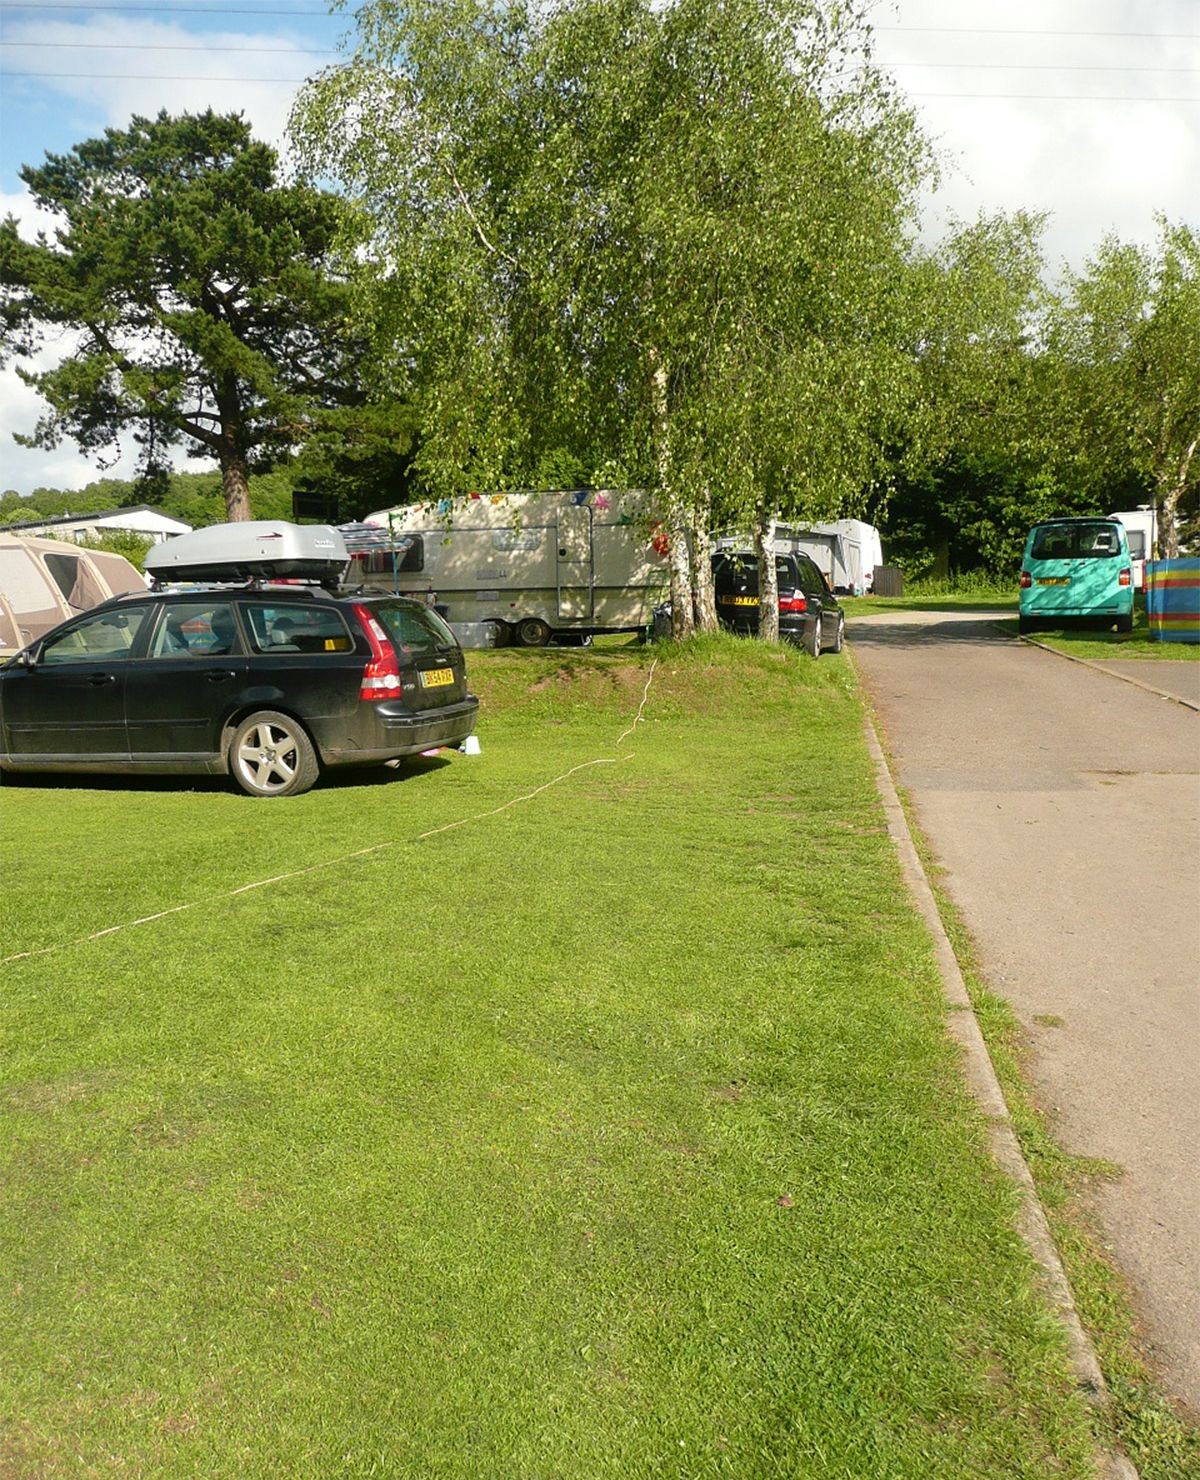 On Site Space On Pitch At Andrewshayes Camping And Caravan